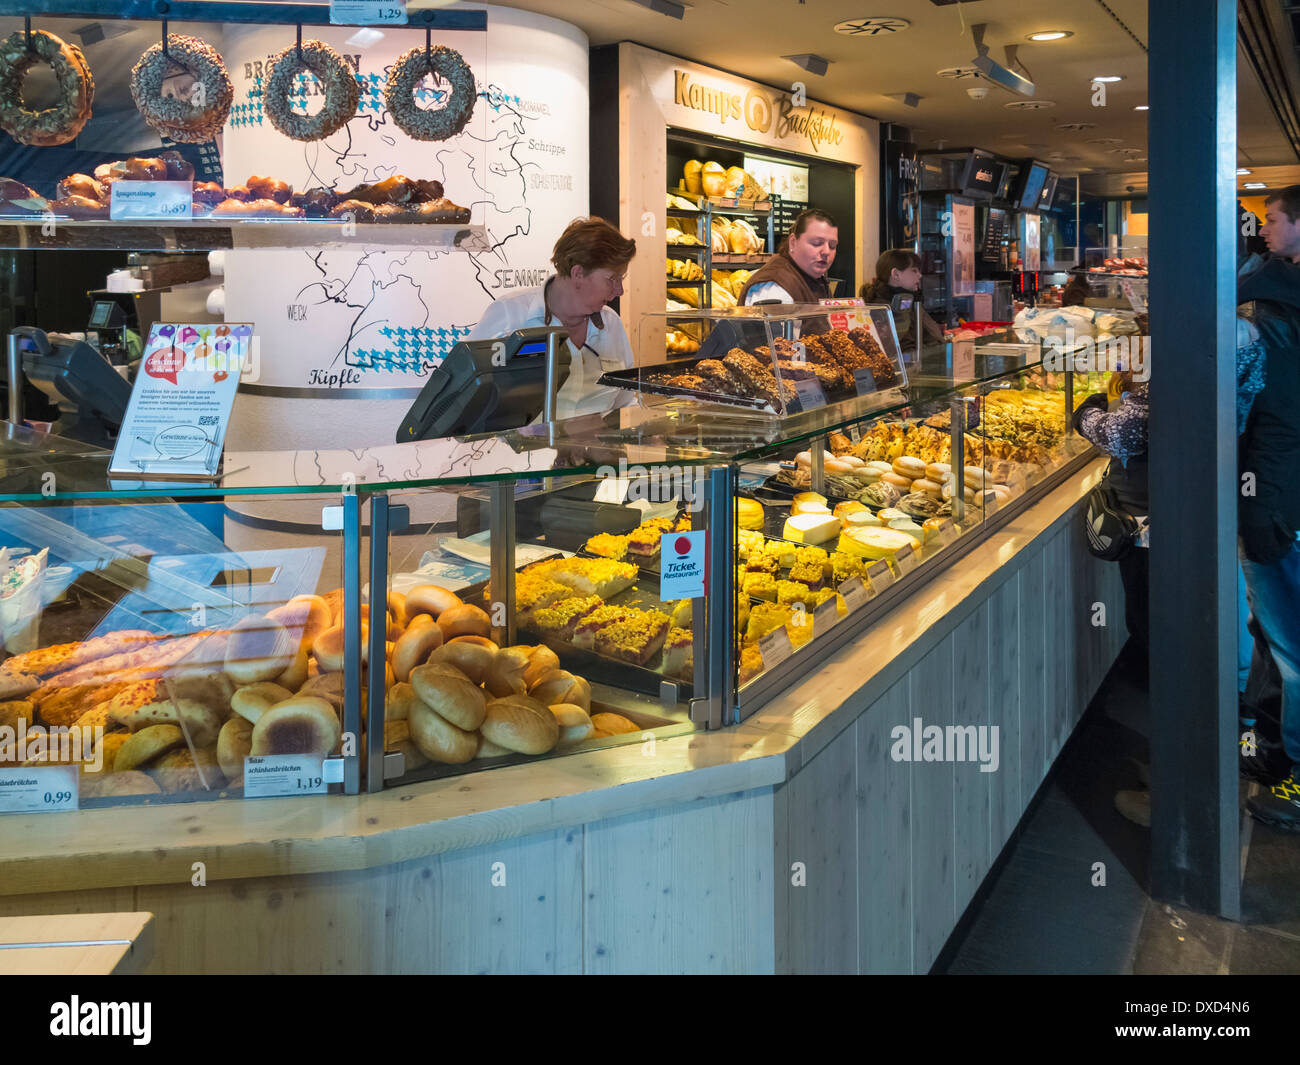 bakery or cake shop in the hauptbahnhof station berlin germany stock photo royalty free image. Black Bedroom Furniture Sets. Home Design Ideas